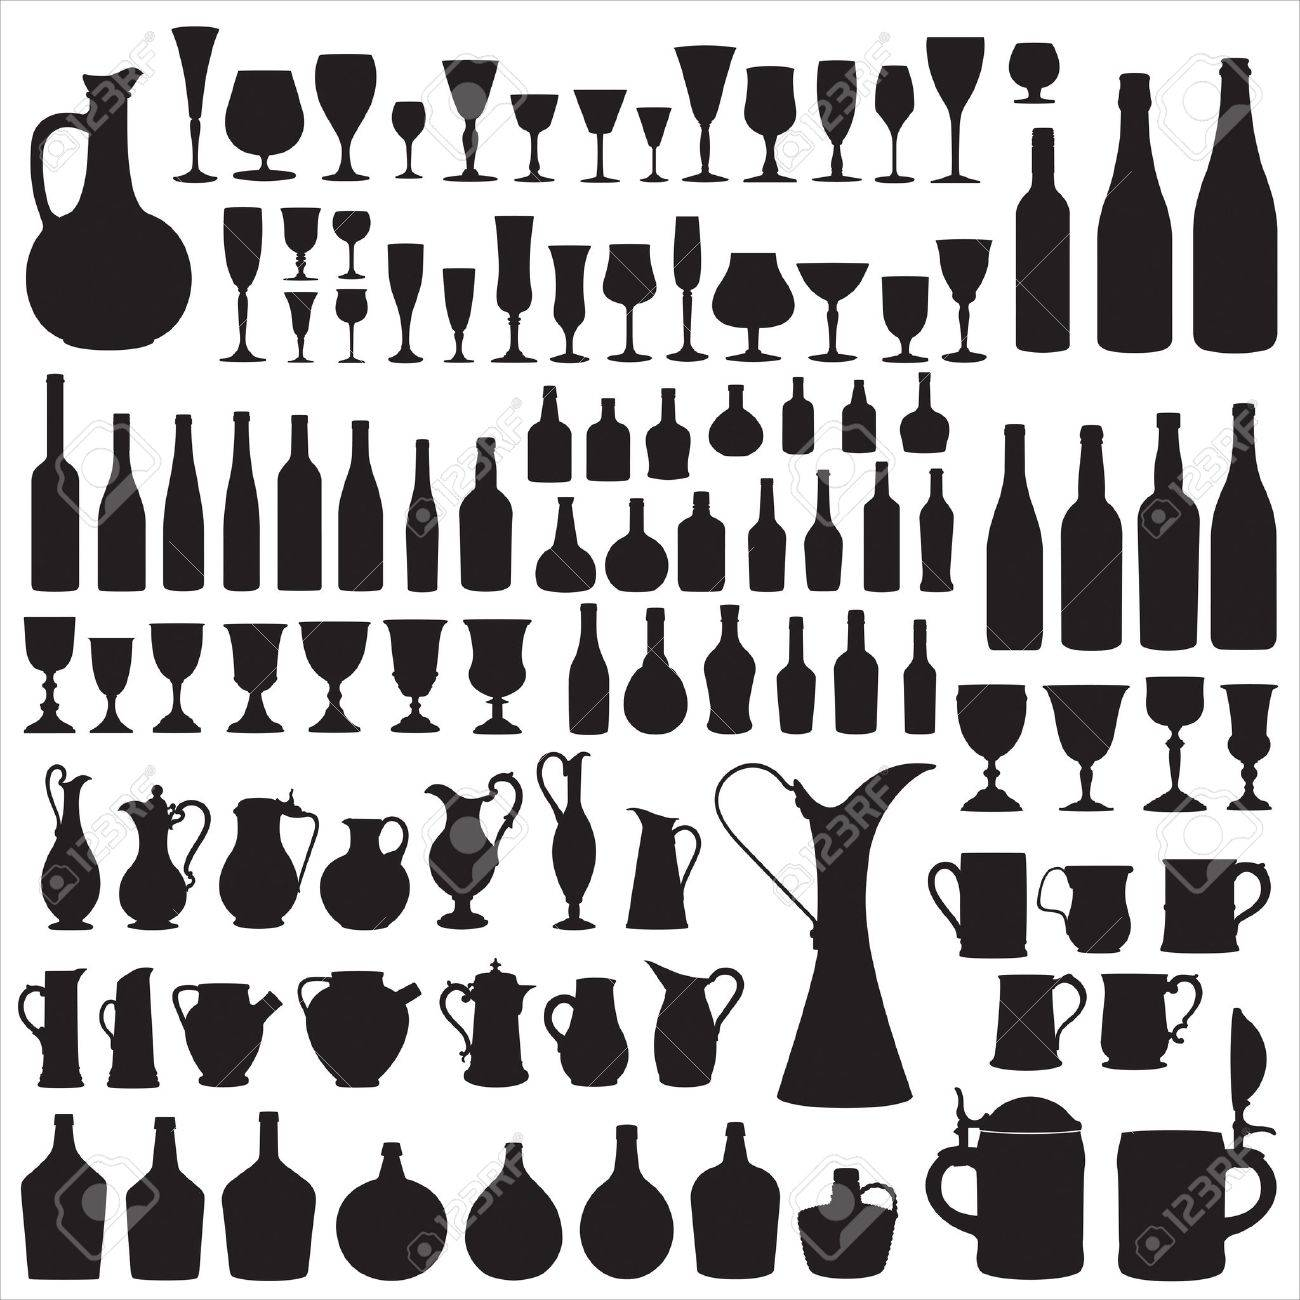 Wineware silhouettes Stock Vector - 9395526